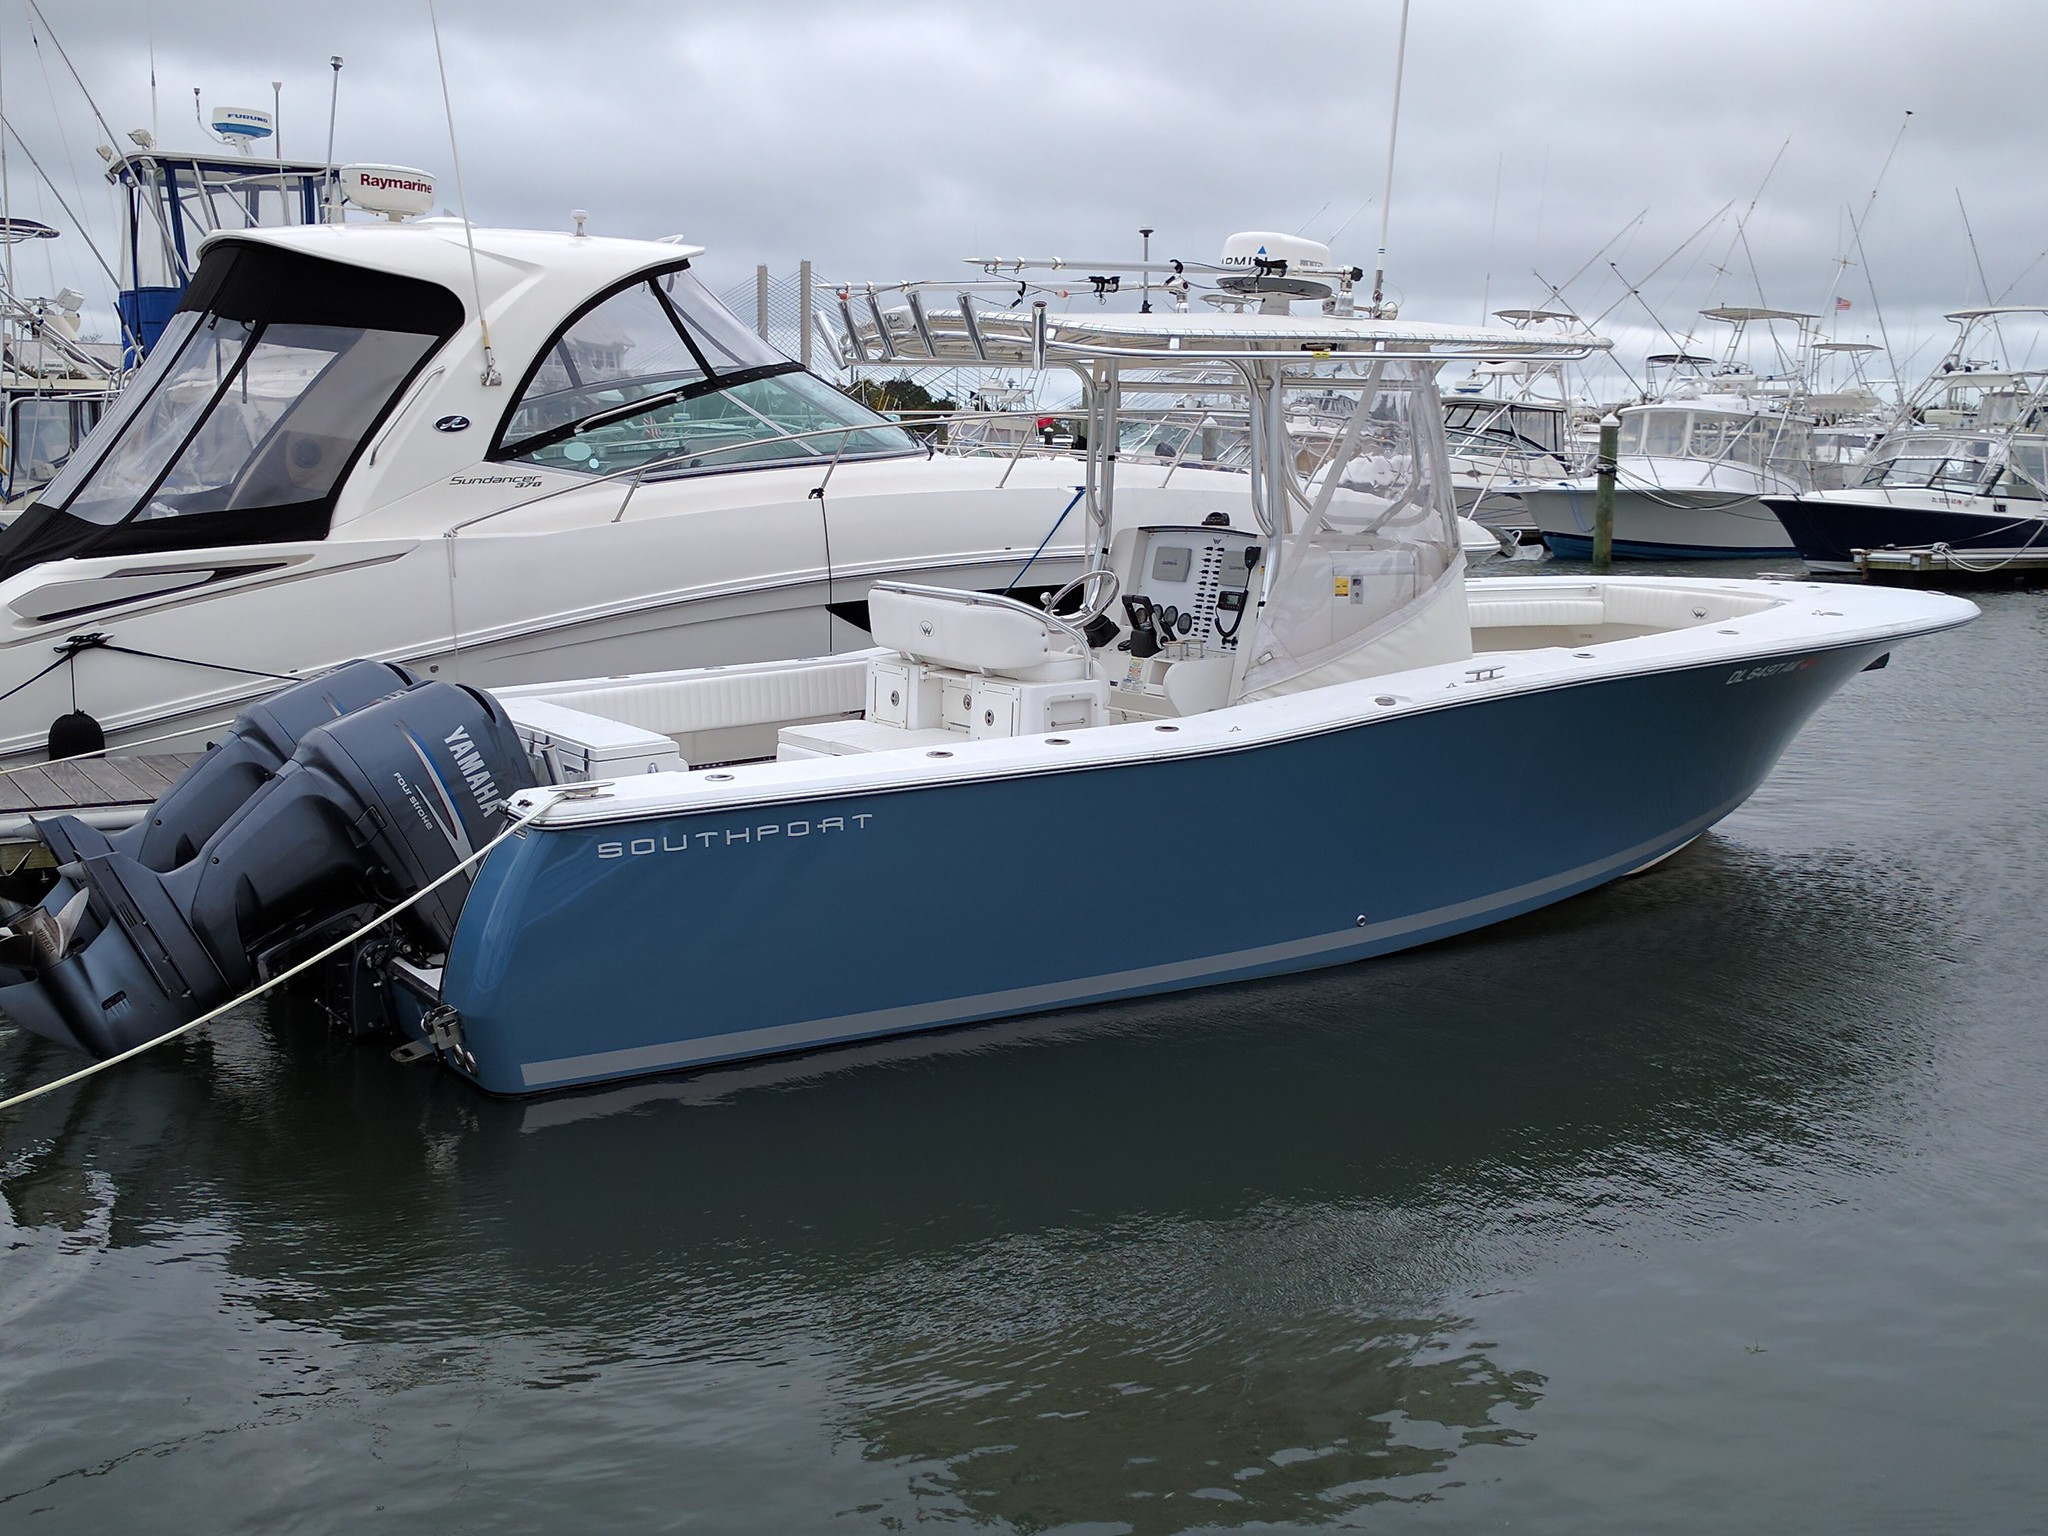 F225 Won't rev over 2800 RPM - Yamaha Outboard Parts Forum